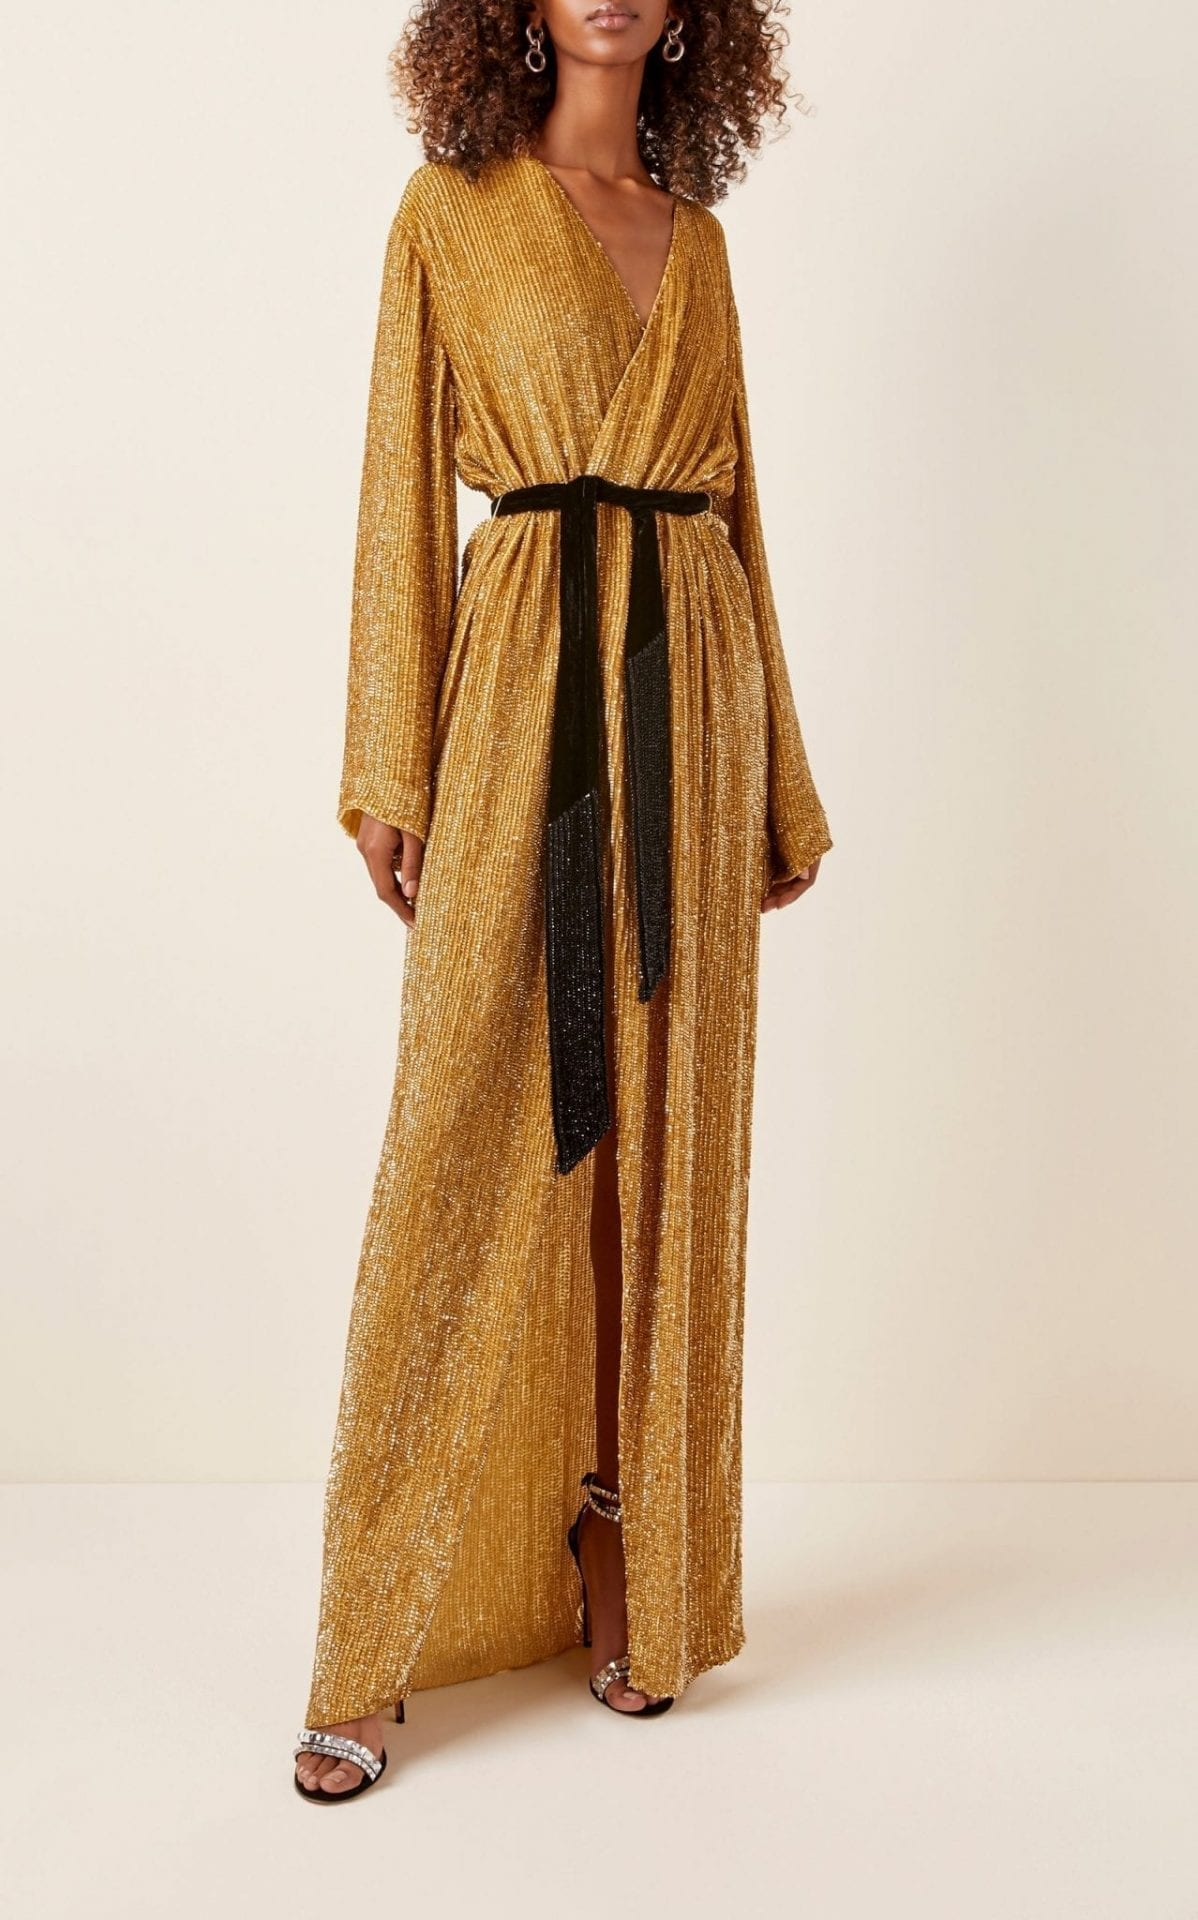 RETROFÊTE Janet Belted Sequined Chiffon Maxi Dress